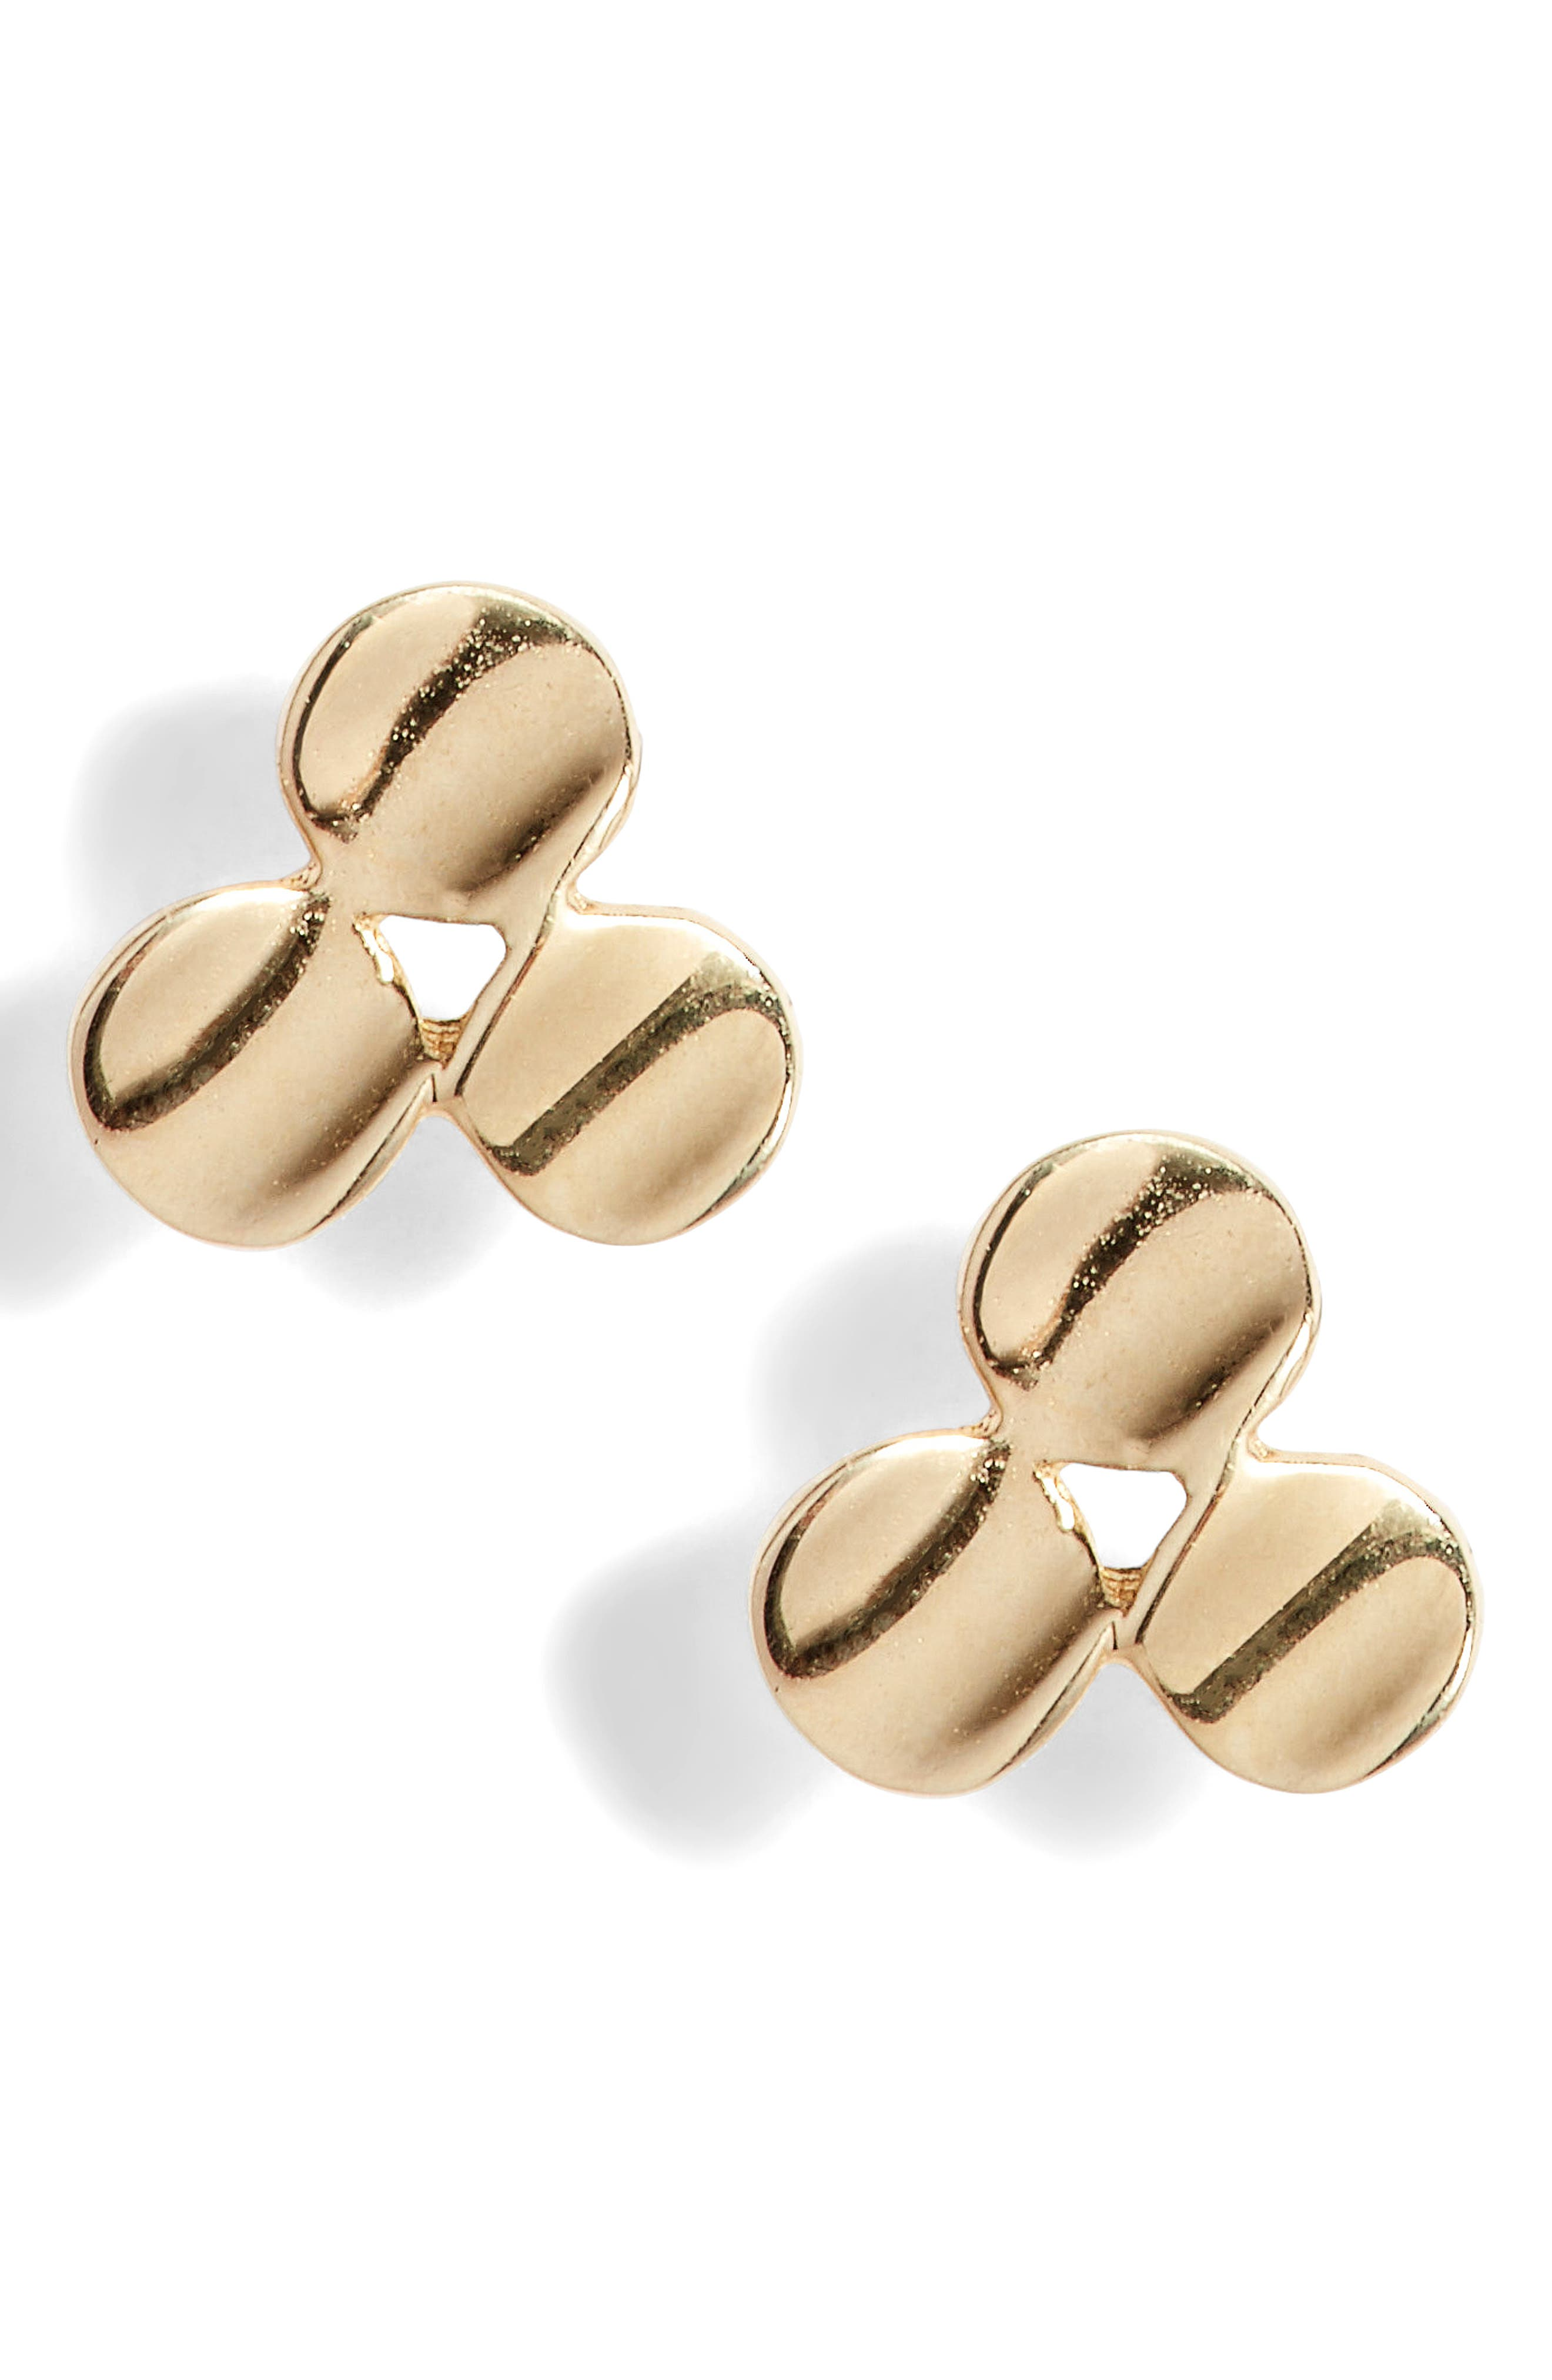 Clover Stud Earrings,                         Main,                         color, Yellow Gold